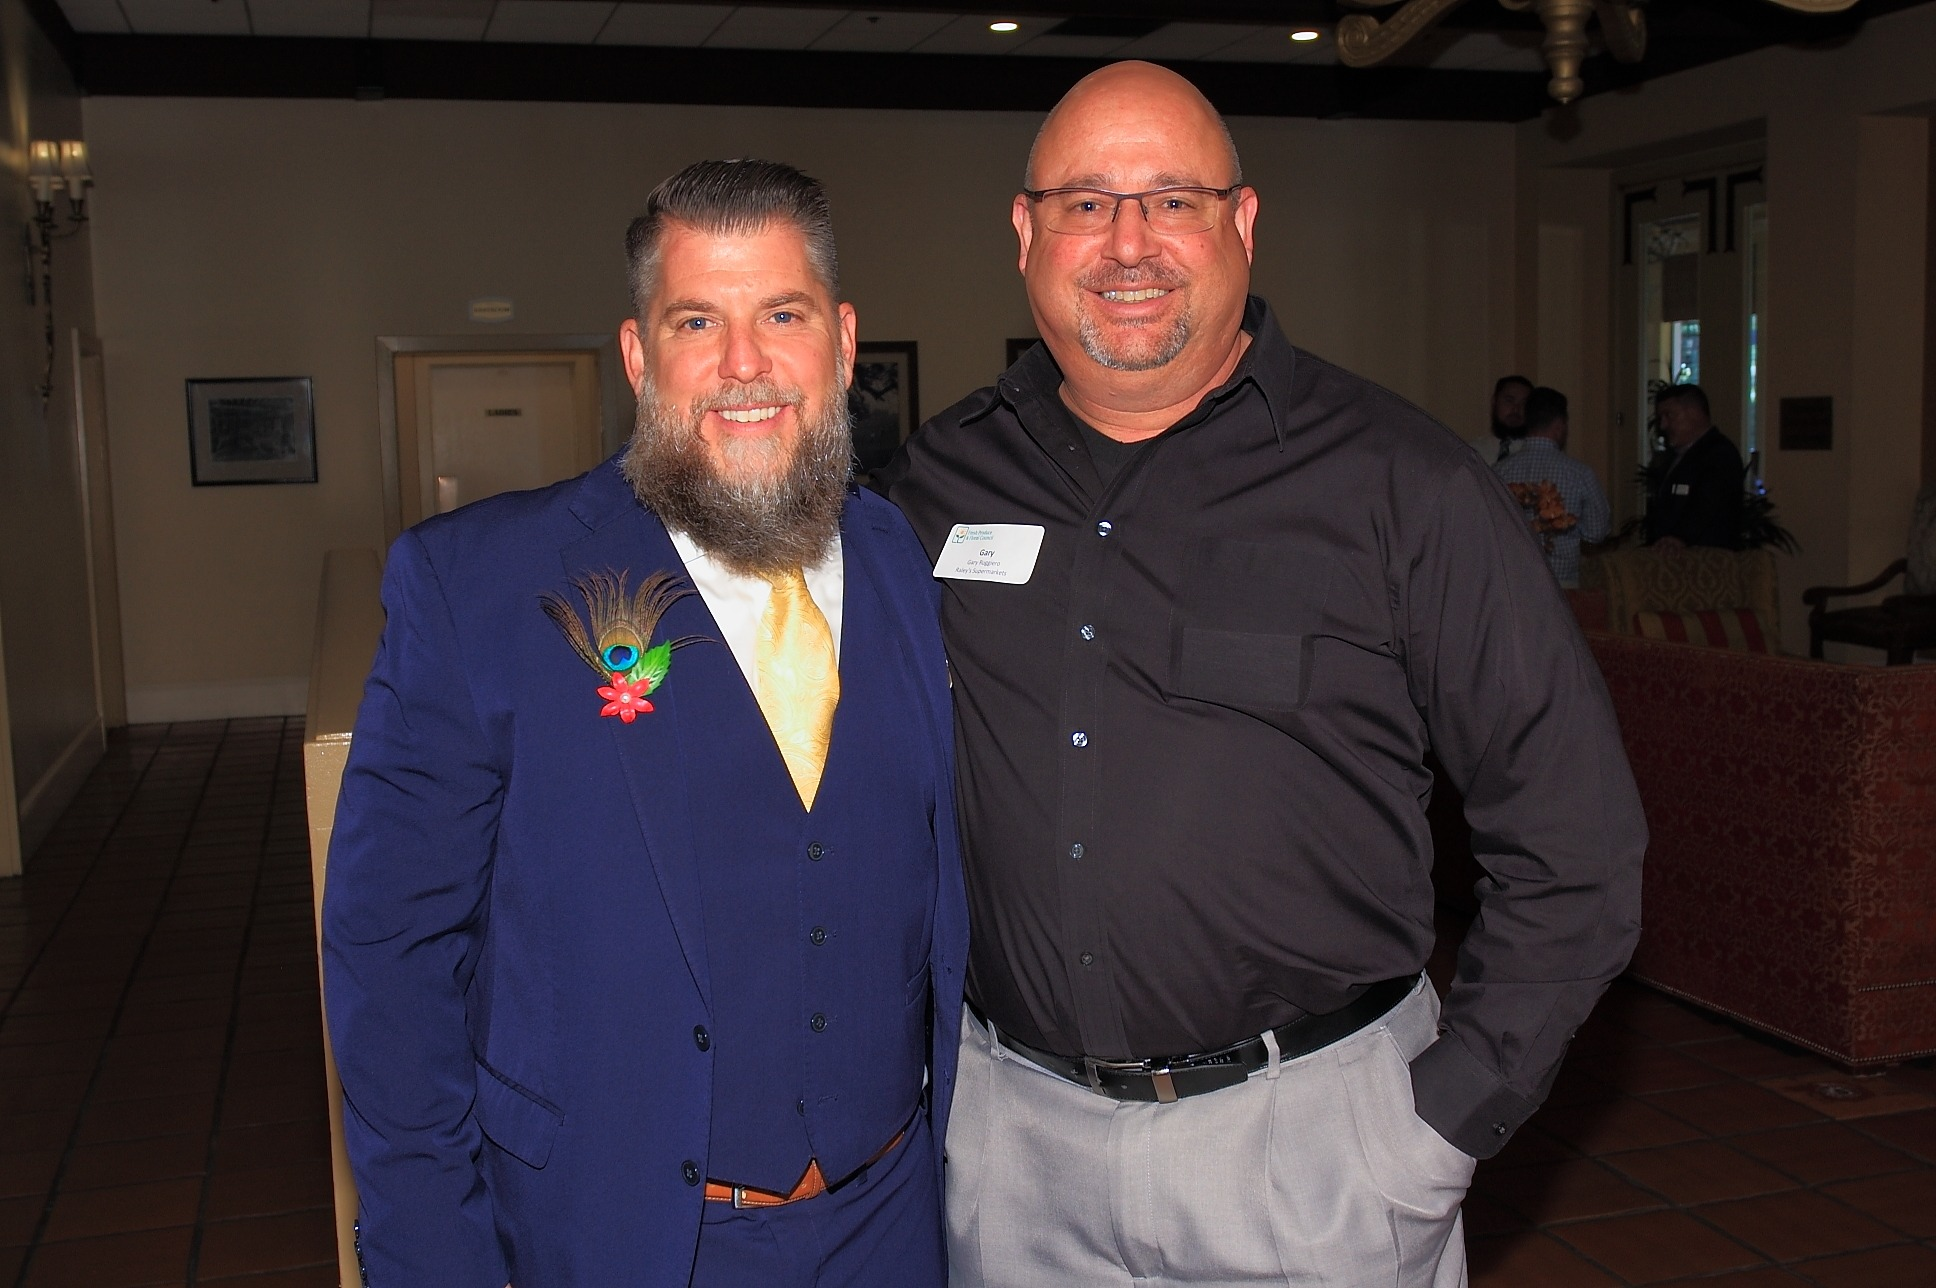 Michael Schutt and Gary Ruggiero of Raley's Supermarkets pose for a quick photo before the luncheon.